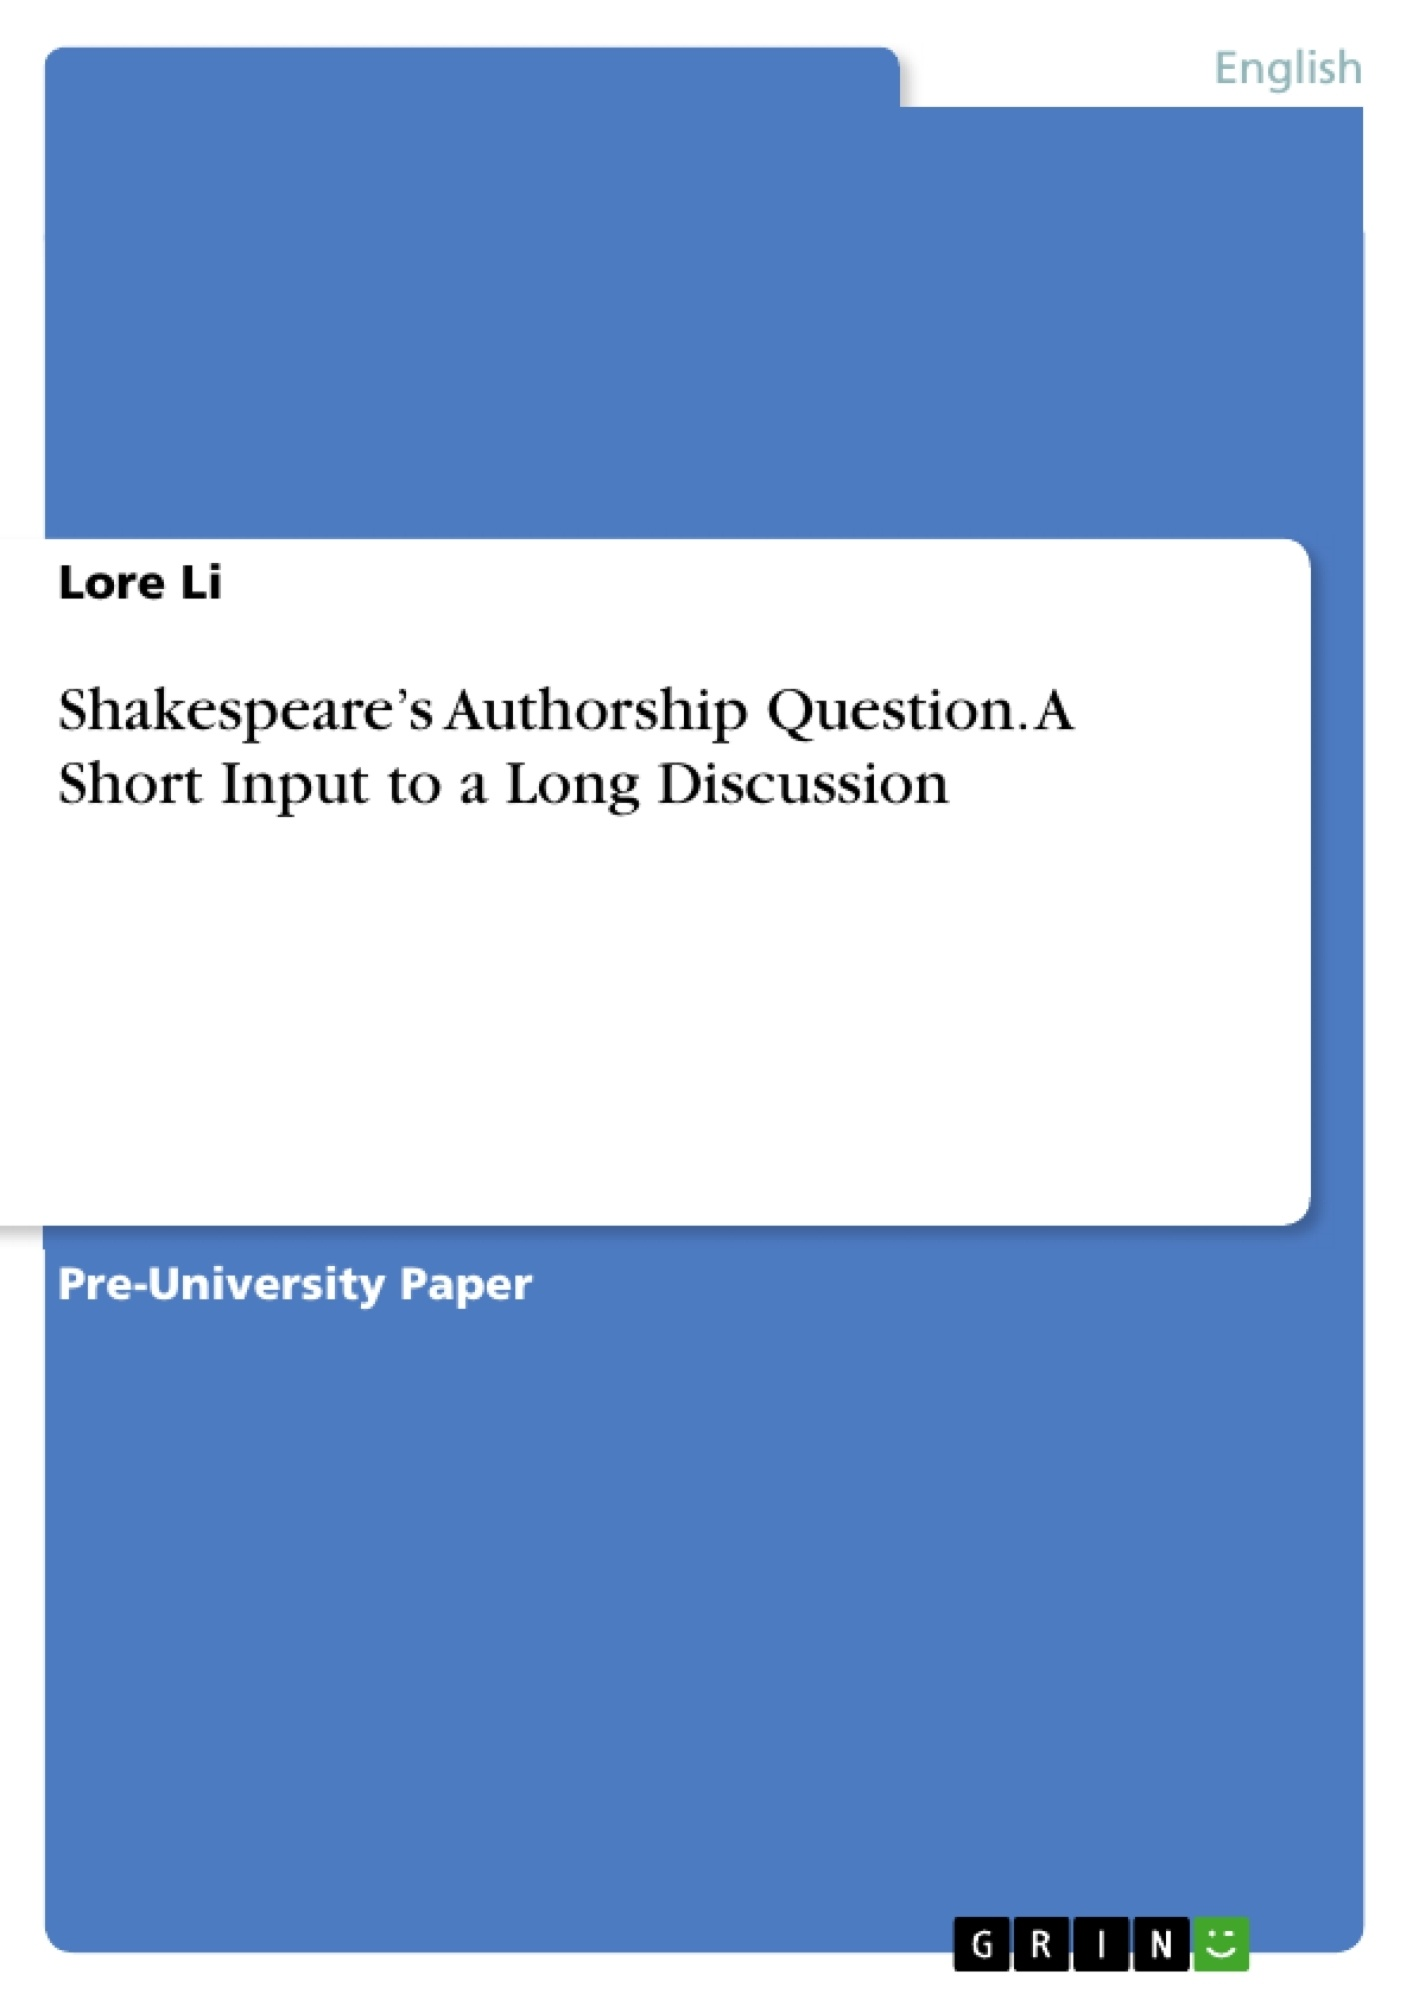 Title: Shakespeare's Authorship Question. A Short Input to a Long Discussion